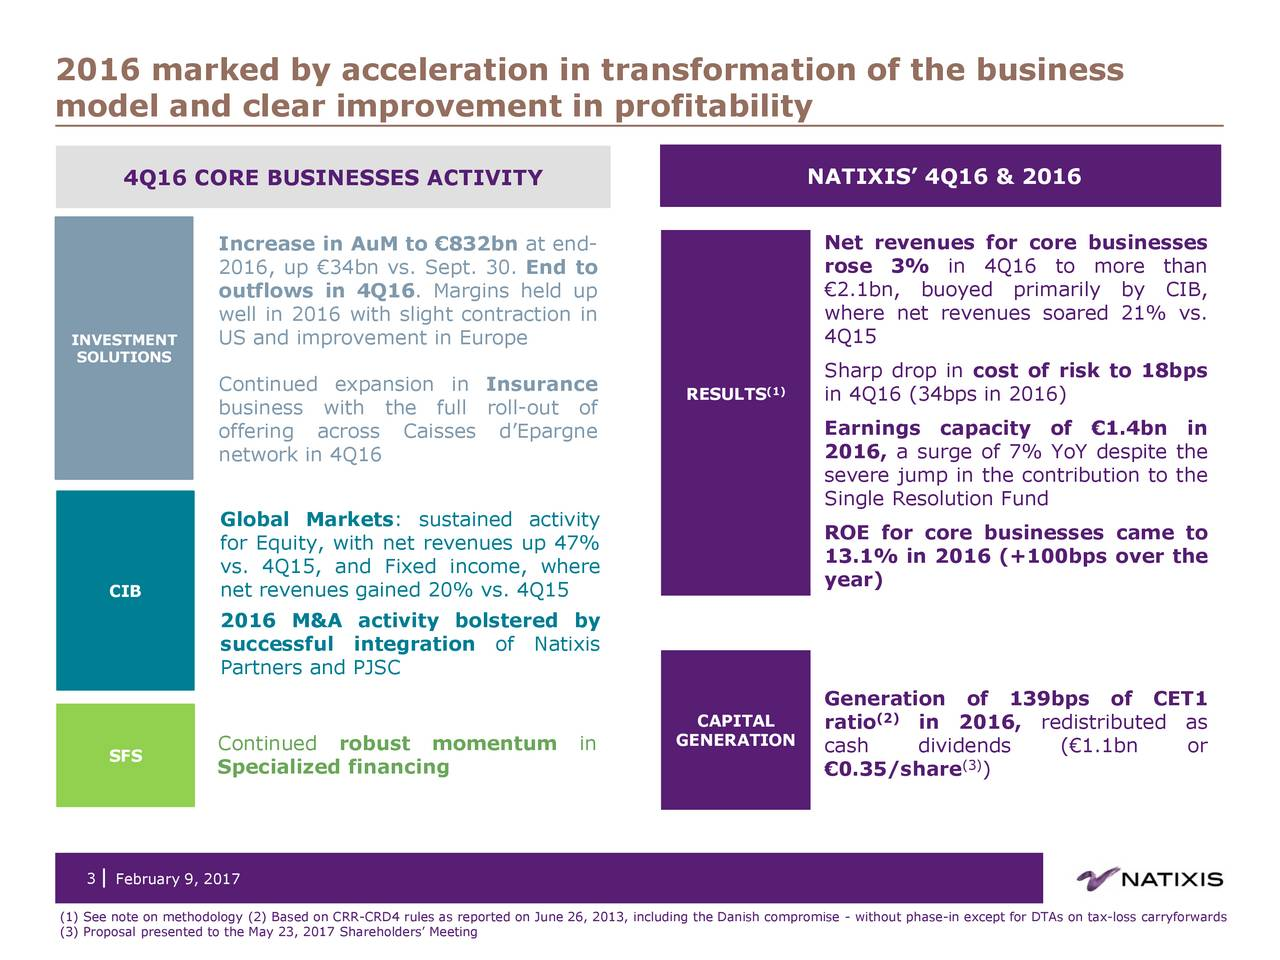 model and clear improvement in profitability 4Q16 CORE BUSINESSES ACTIVITY NATIXIS 4Q16 & 2016 Increase in AuM to 832bn at end- Net revenues for core businesses 2016, up 34bn vs. Sept. 30. End to rose 3% in 4Q16 to more than outflows in 4Q16. Margins held up 2.1bn, buoyed primarily by CIB, well in 2016 with slight contraction in where net revenues soared 21% vs. INVESTMENT US and improvement in Europe 4Q15 SOLUTIONS Continued expansion in Insurance Sharp drop in cost of risk to 18bps RESULTS(1) in 4Q16 (34bps in 2016) business with the full roll-out of offering across Caisses dEpargne Earnings capacity of 1.4bn in network in 4Q16 2016, a surge of 7% YoY despite the severe jump in the contribution to the Single Resolution Fund Global Markets: sustained activity ROE for core businesses came to for Equity, with net revenues up 47% 13.1% in 2016 (+100bps over the vs. 4Q15, and Fixed income, where CIB net revenues gained 20% vs. 4Q15 year) 2016 M&A activity bolstered by successful integration of Natixis Partners and PJSC Generation of 139bps of CET1 CAPITAL ratio(2) in 2016, redistributed as Continued robust momentum in GENERATION cash dividends (1.1bn or SFS Specialized financing 0.35/share (3) 3 February 9, 2017 (1) See note on methodology (2) Based on CRR-CRD4 rules as reported on June 26, 2013, including the Danish compromise - without phase-in except for DTAs on tax-loss carryforwards (3) Proposal presented to the May 23, 2017 Shareholders Meeting